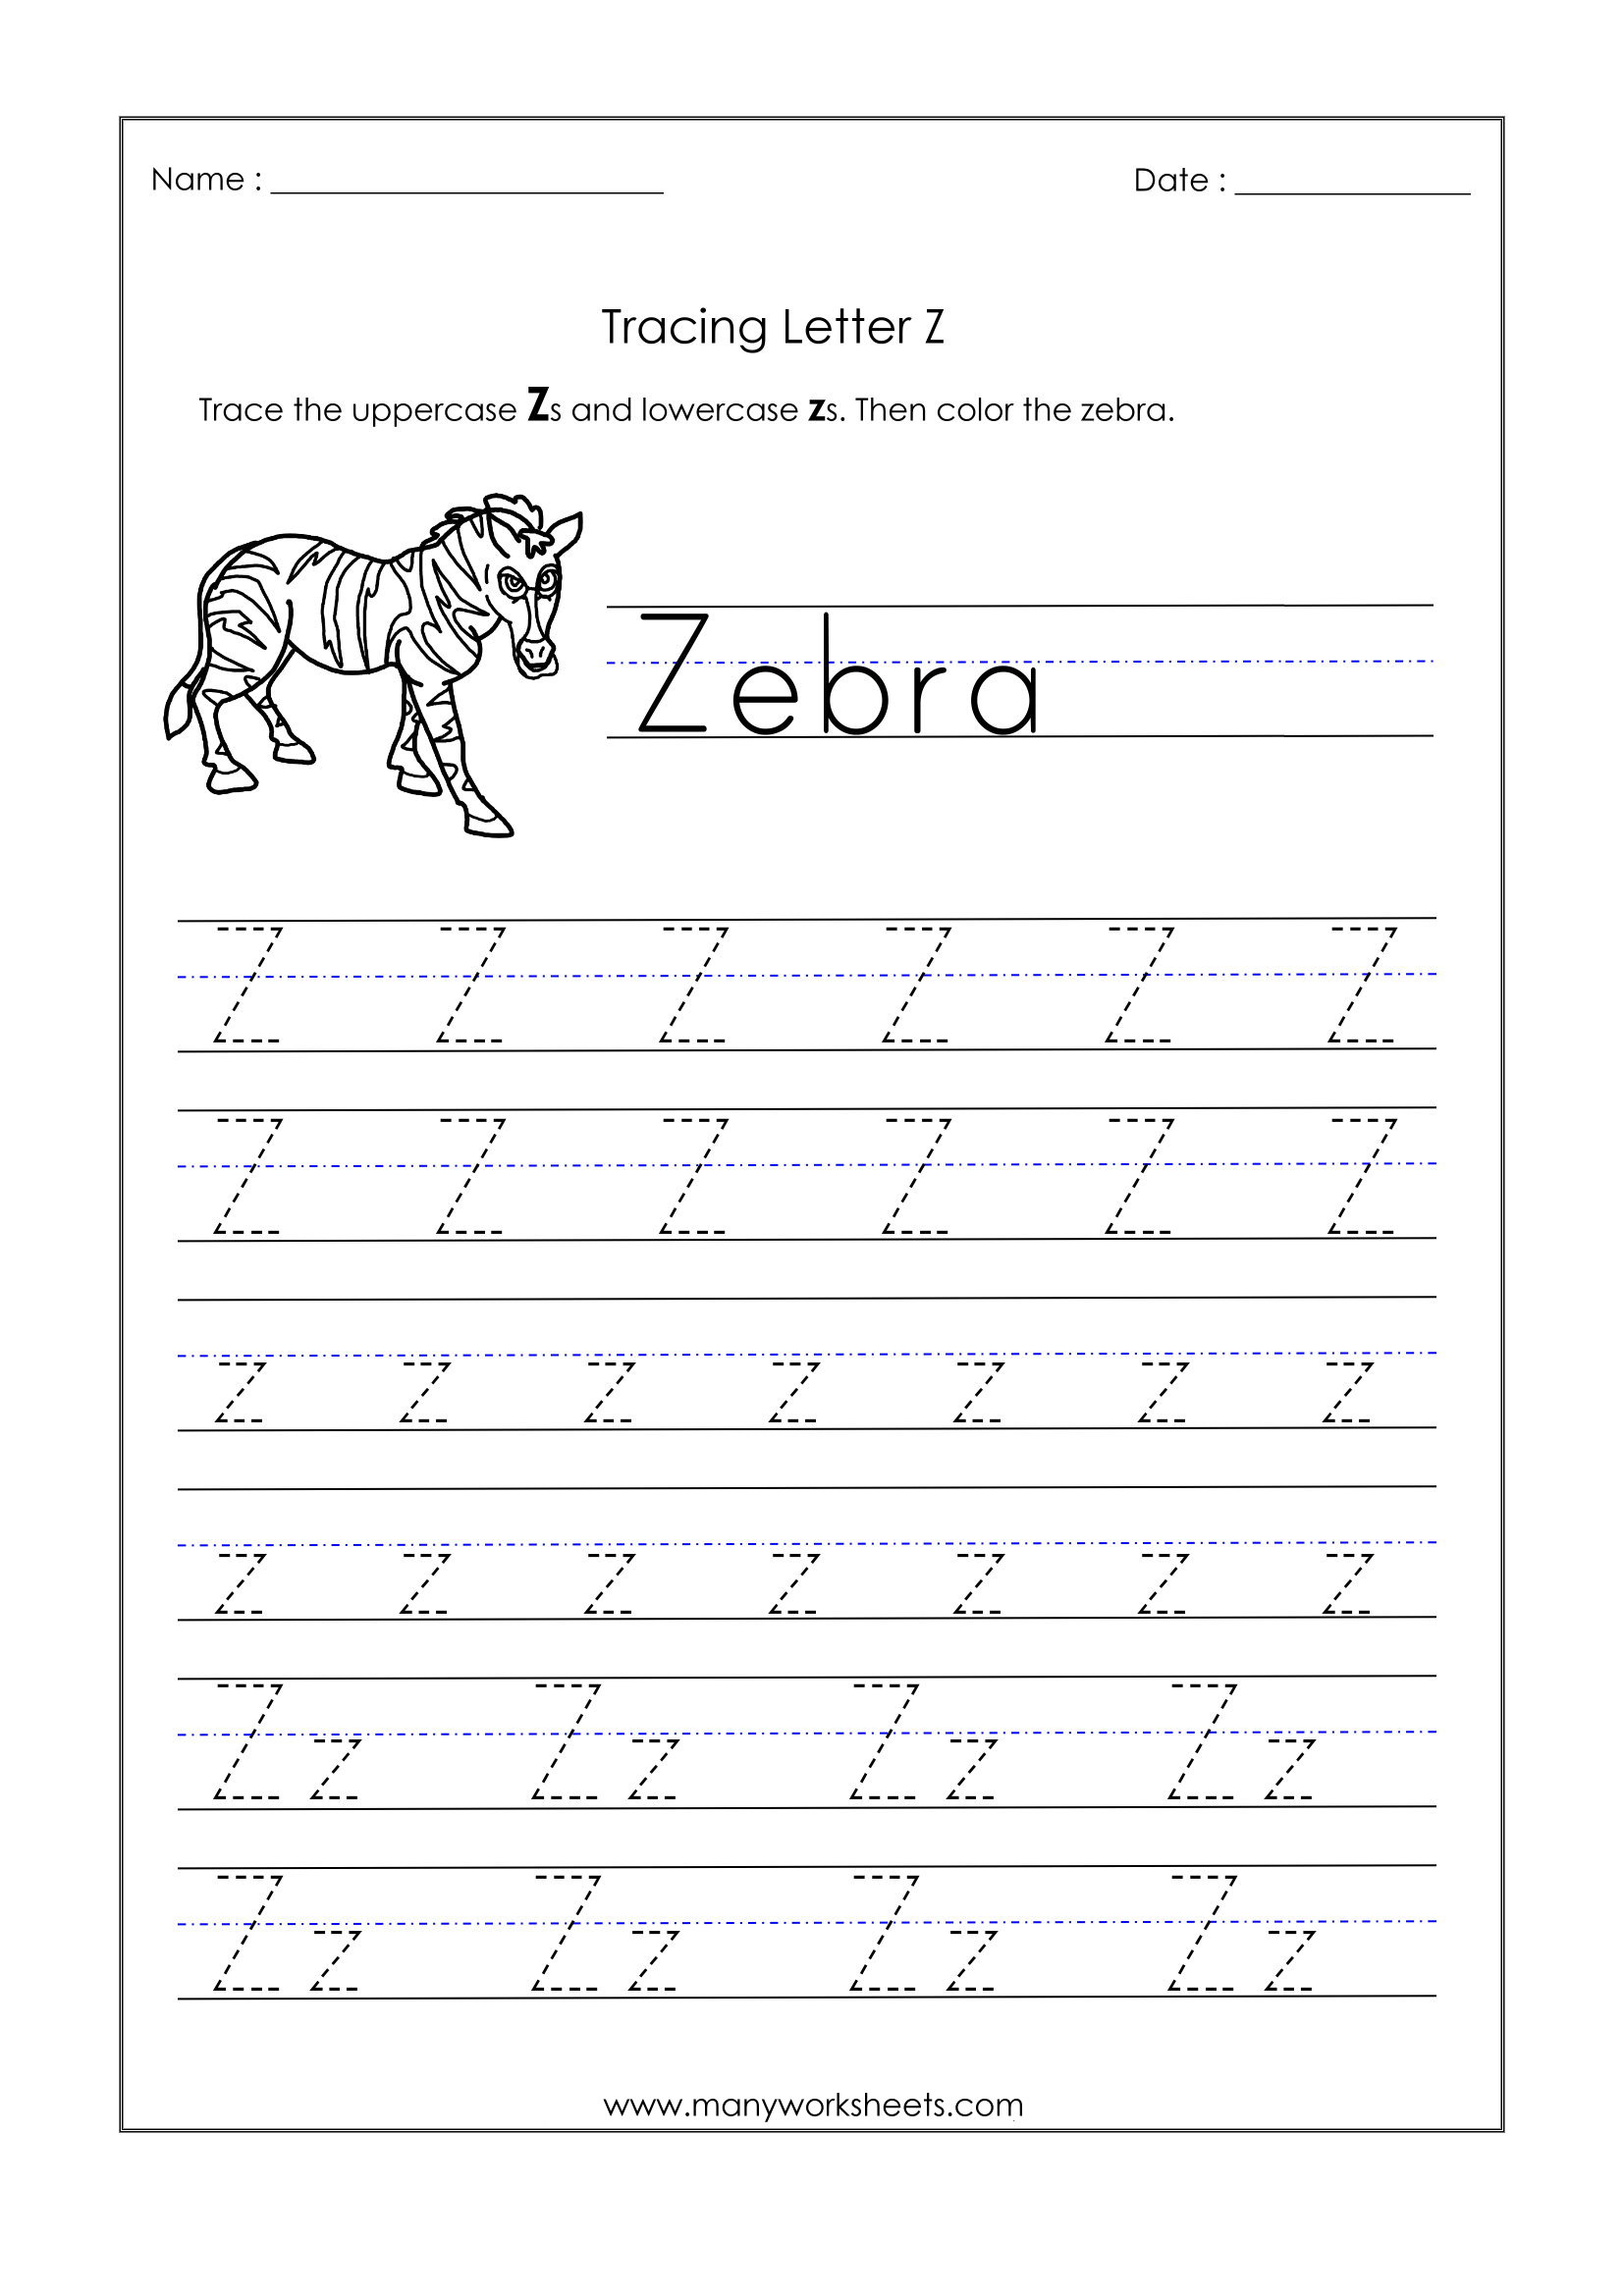 Worksheet ~ Kindergarten Tracing Worksheets Picture Ideas throughout Letter U Tracing Paper